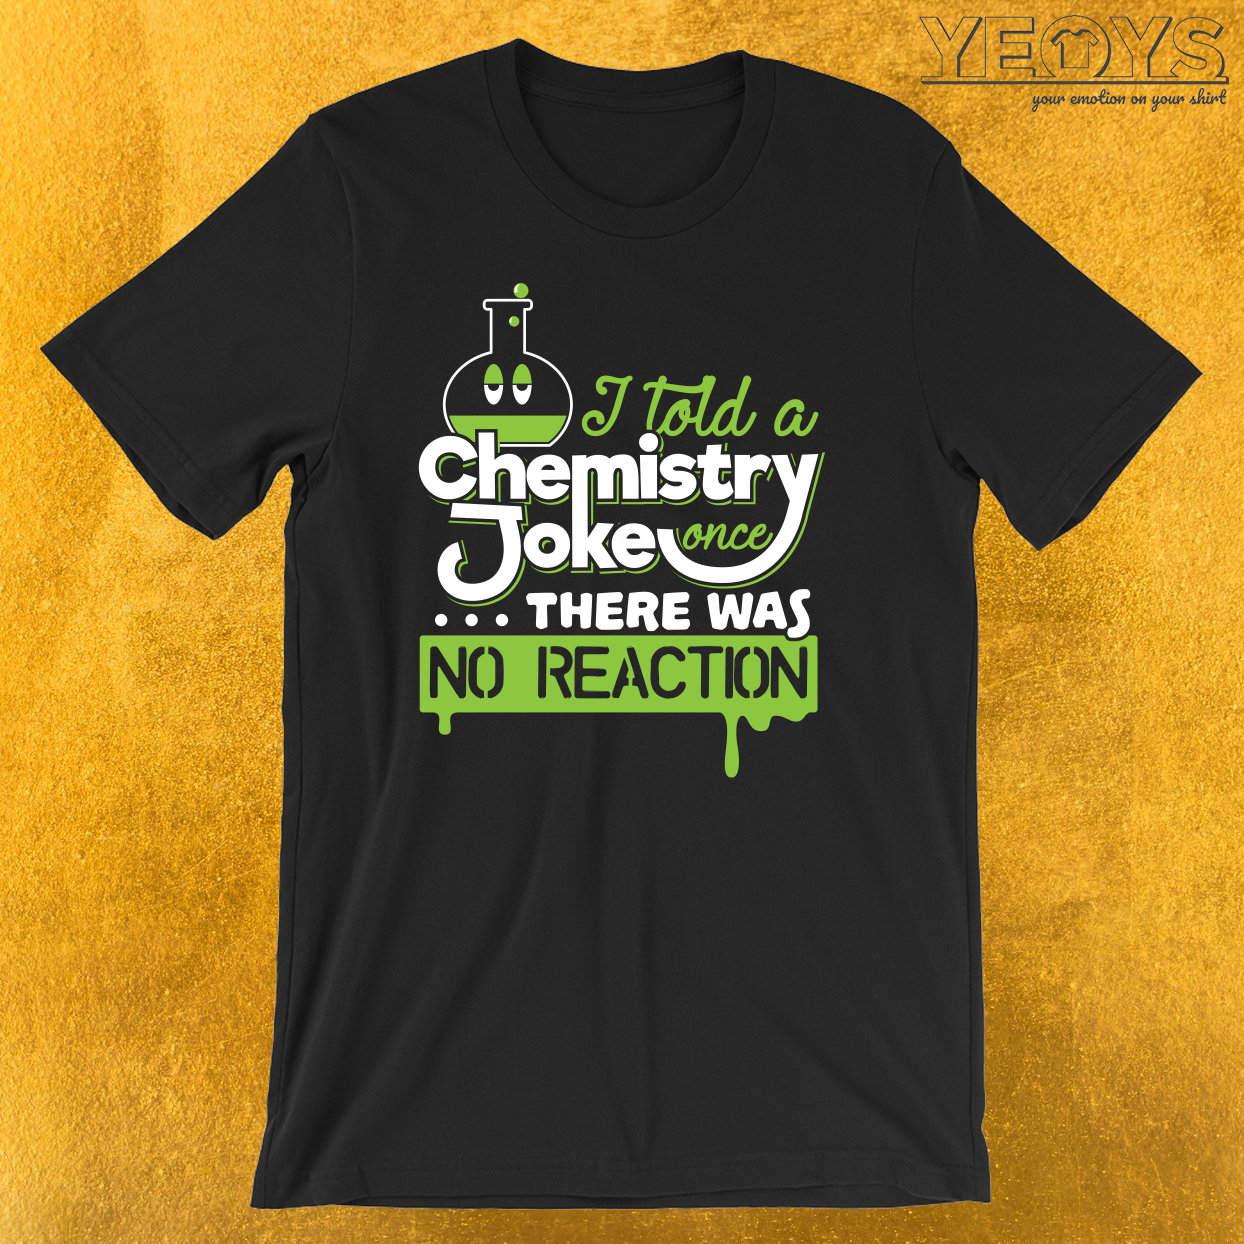 I Told A Chemistry Joke Once… There was no Reaction T-Shirt